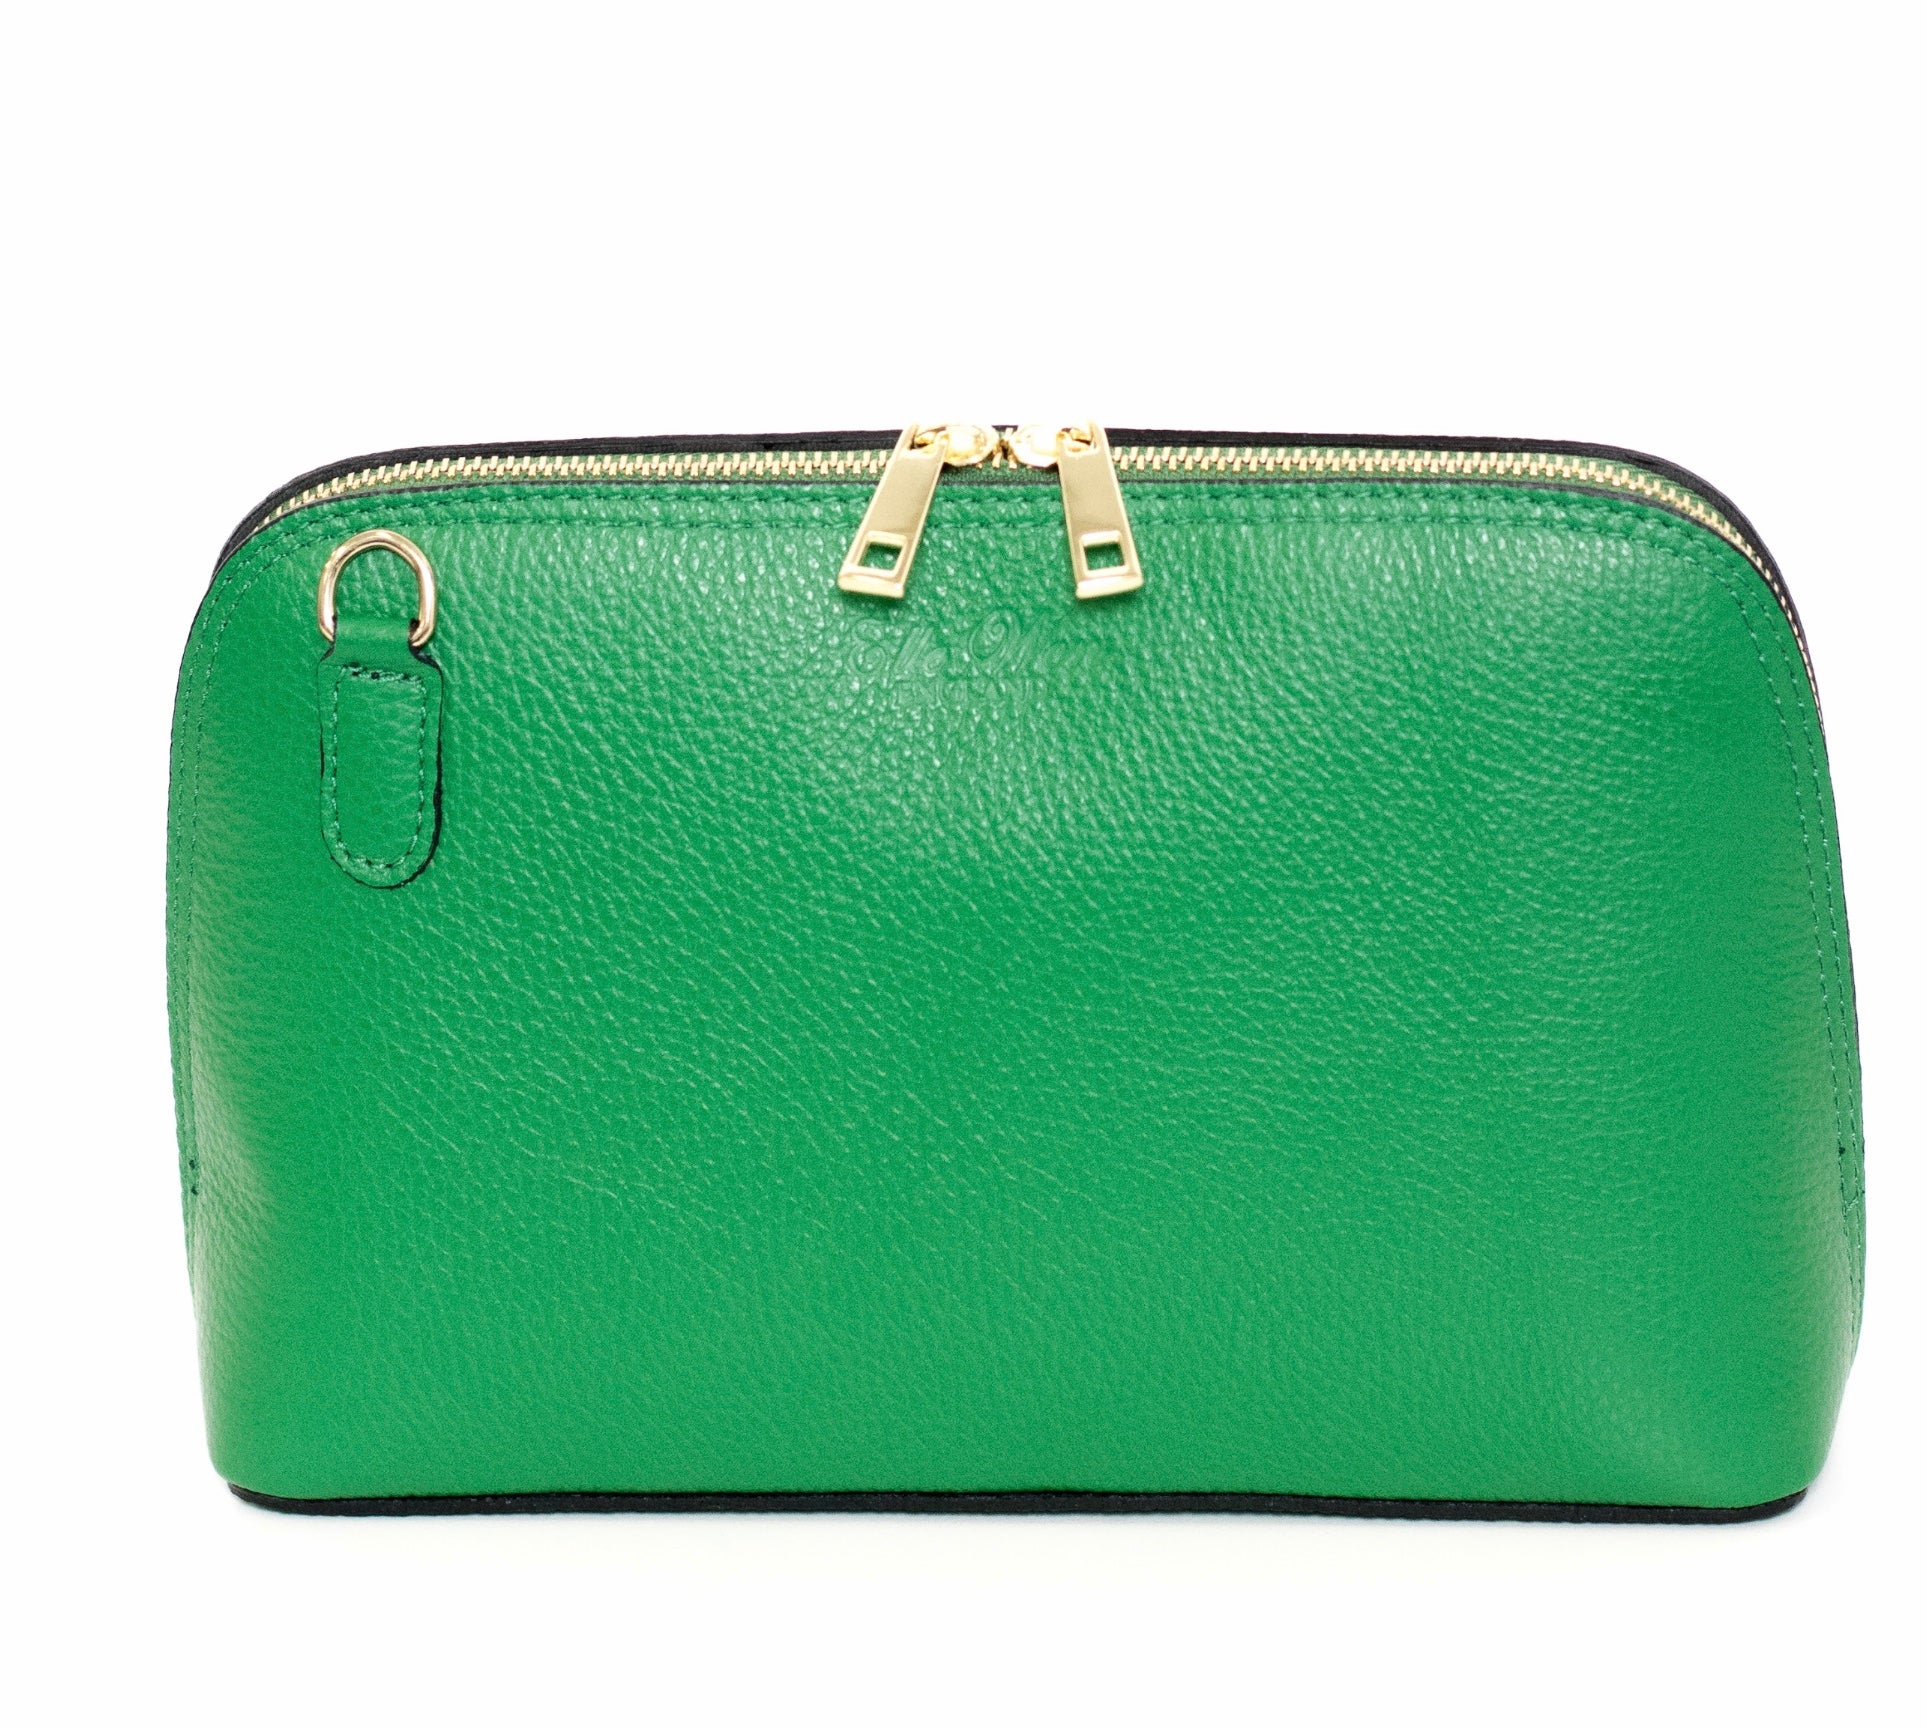 Evelina Crossbody Bag - Green